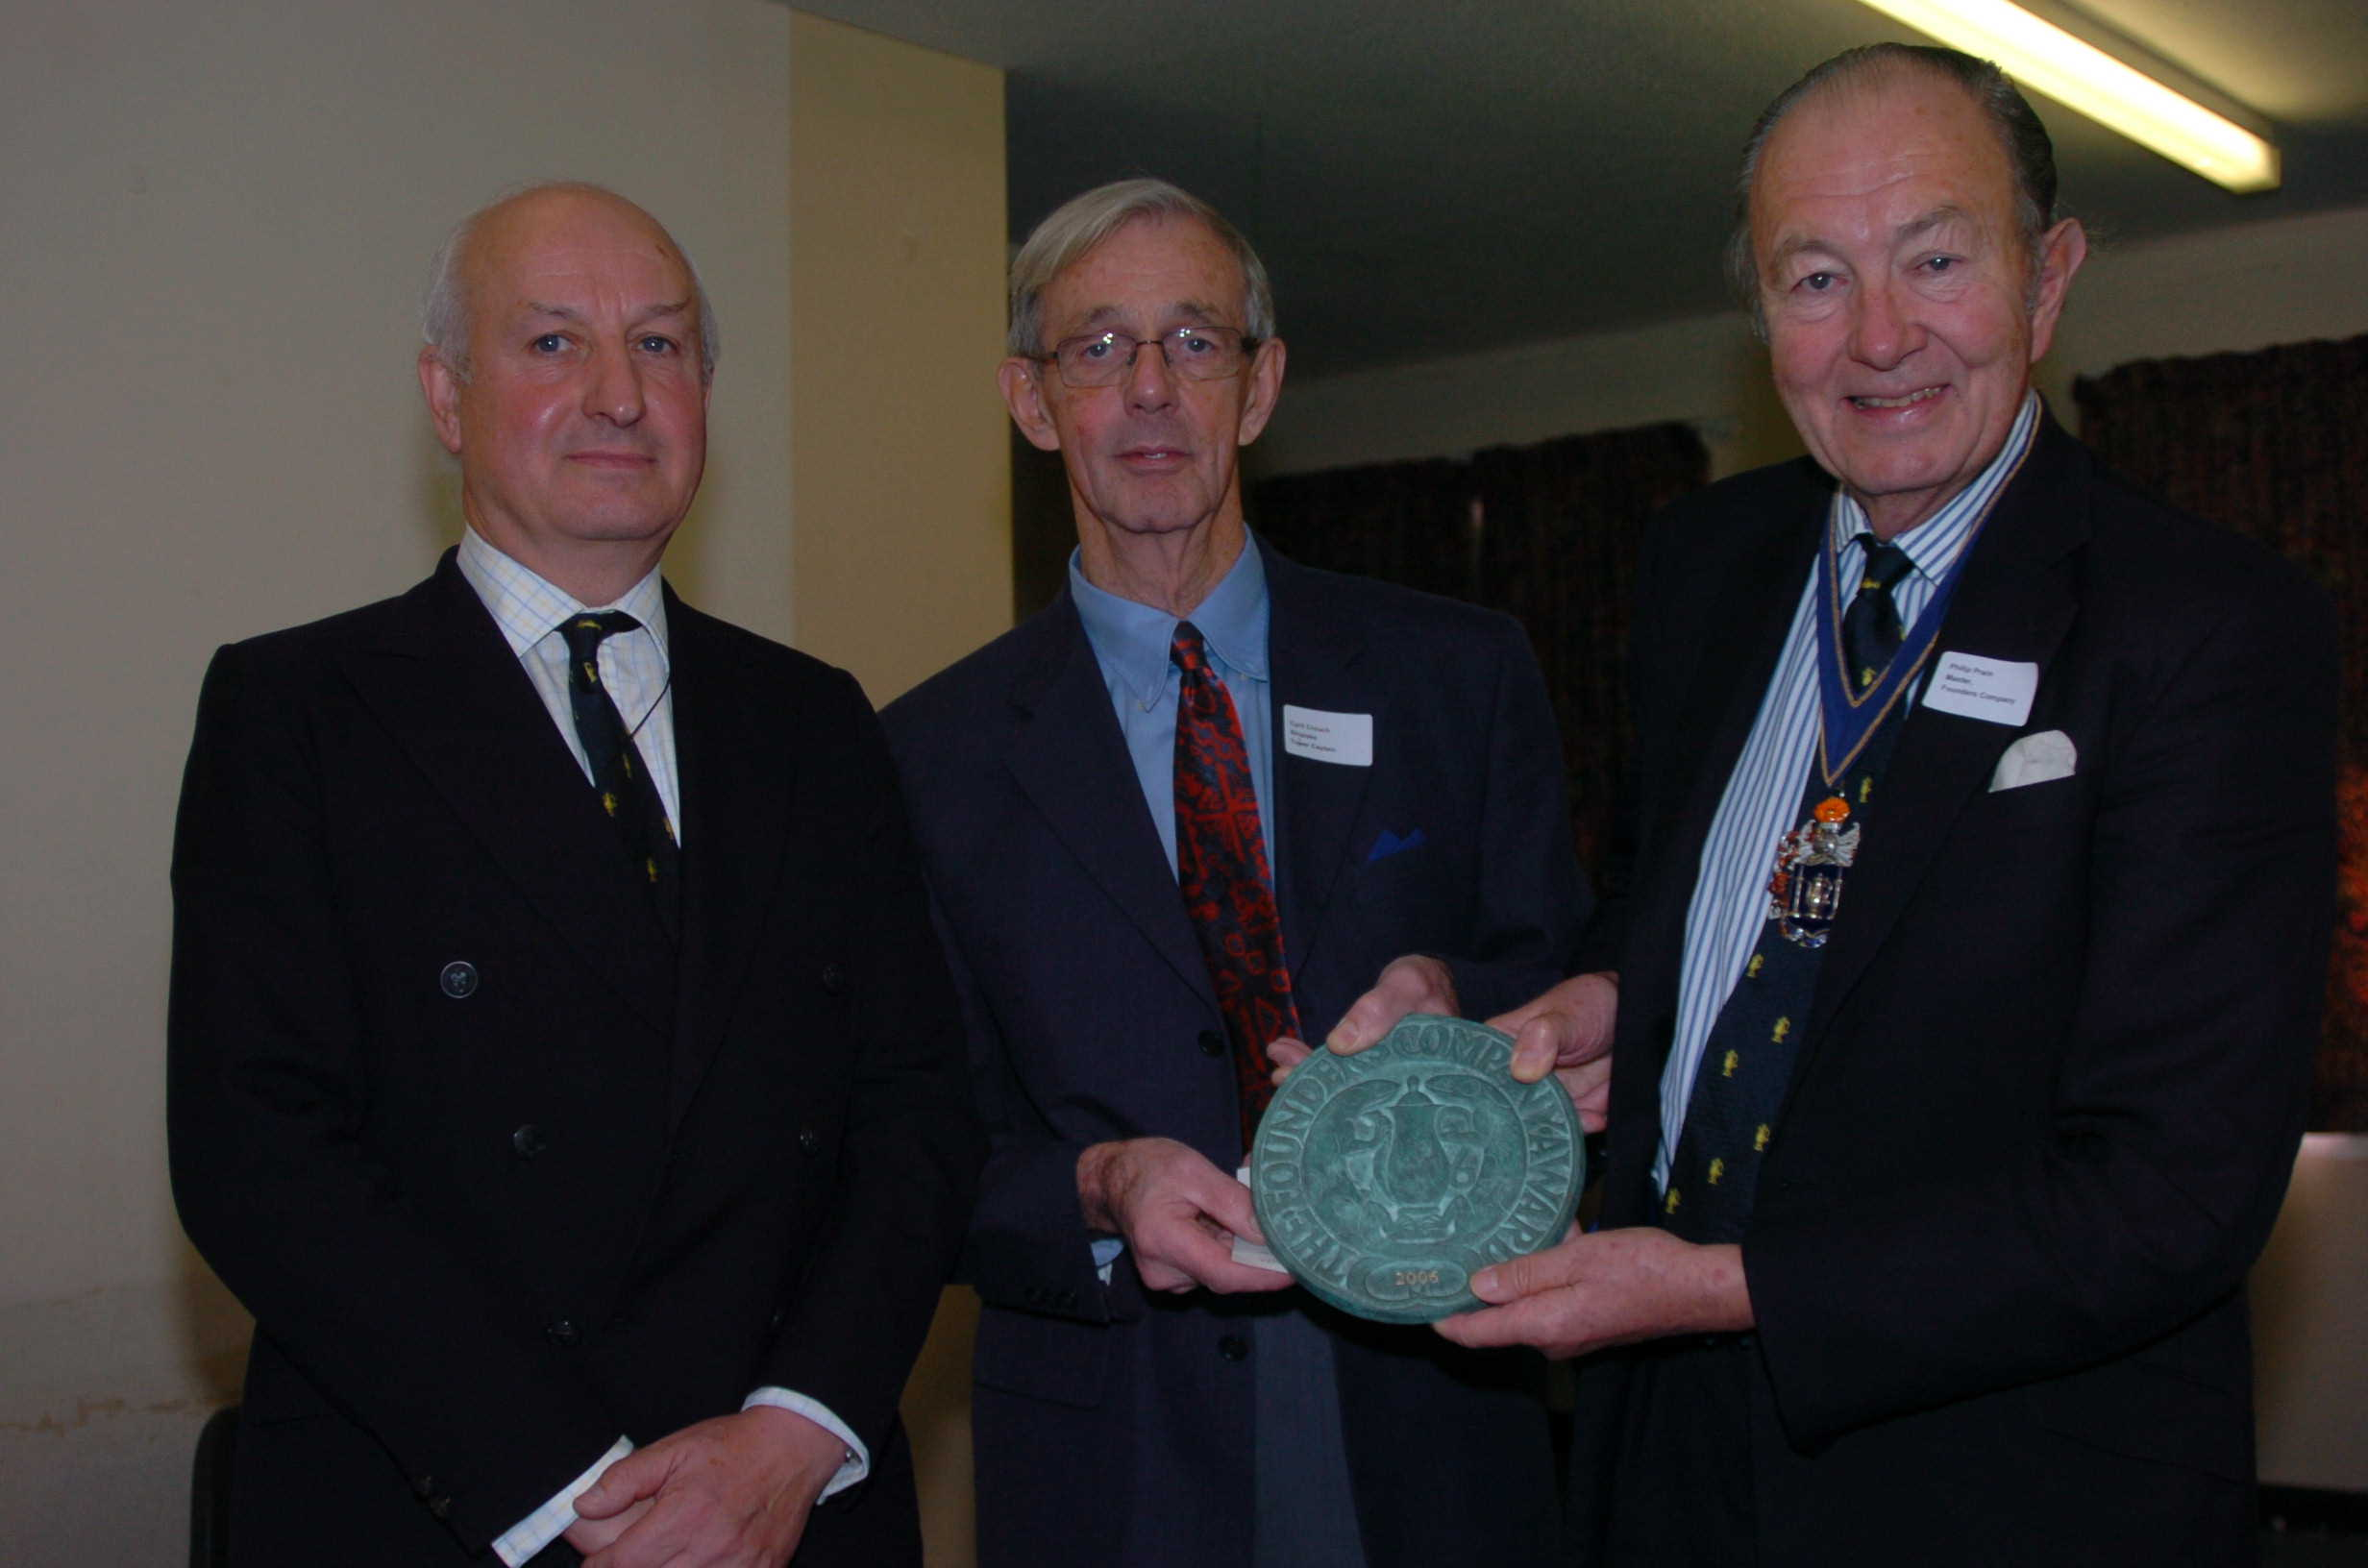 The Presentation of the plaque to Cyril Crouch